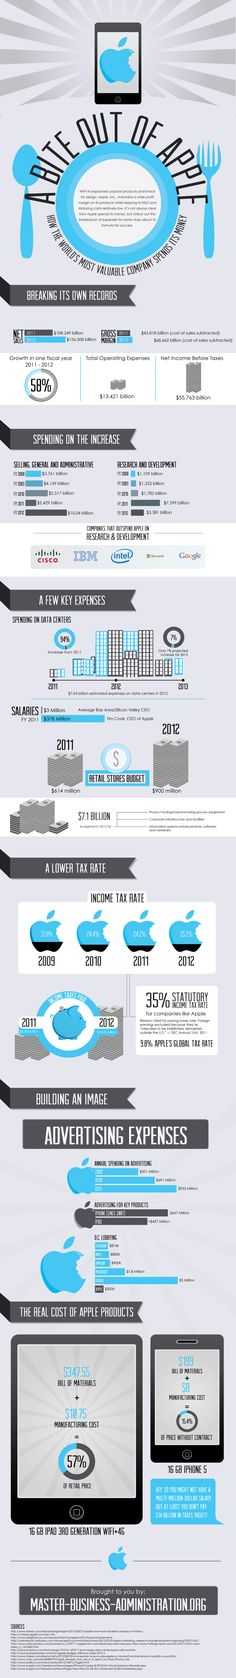 A Bite out of Apple #infografia #infographic